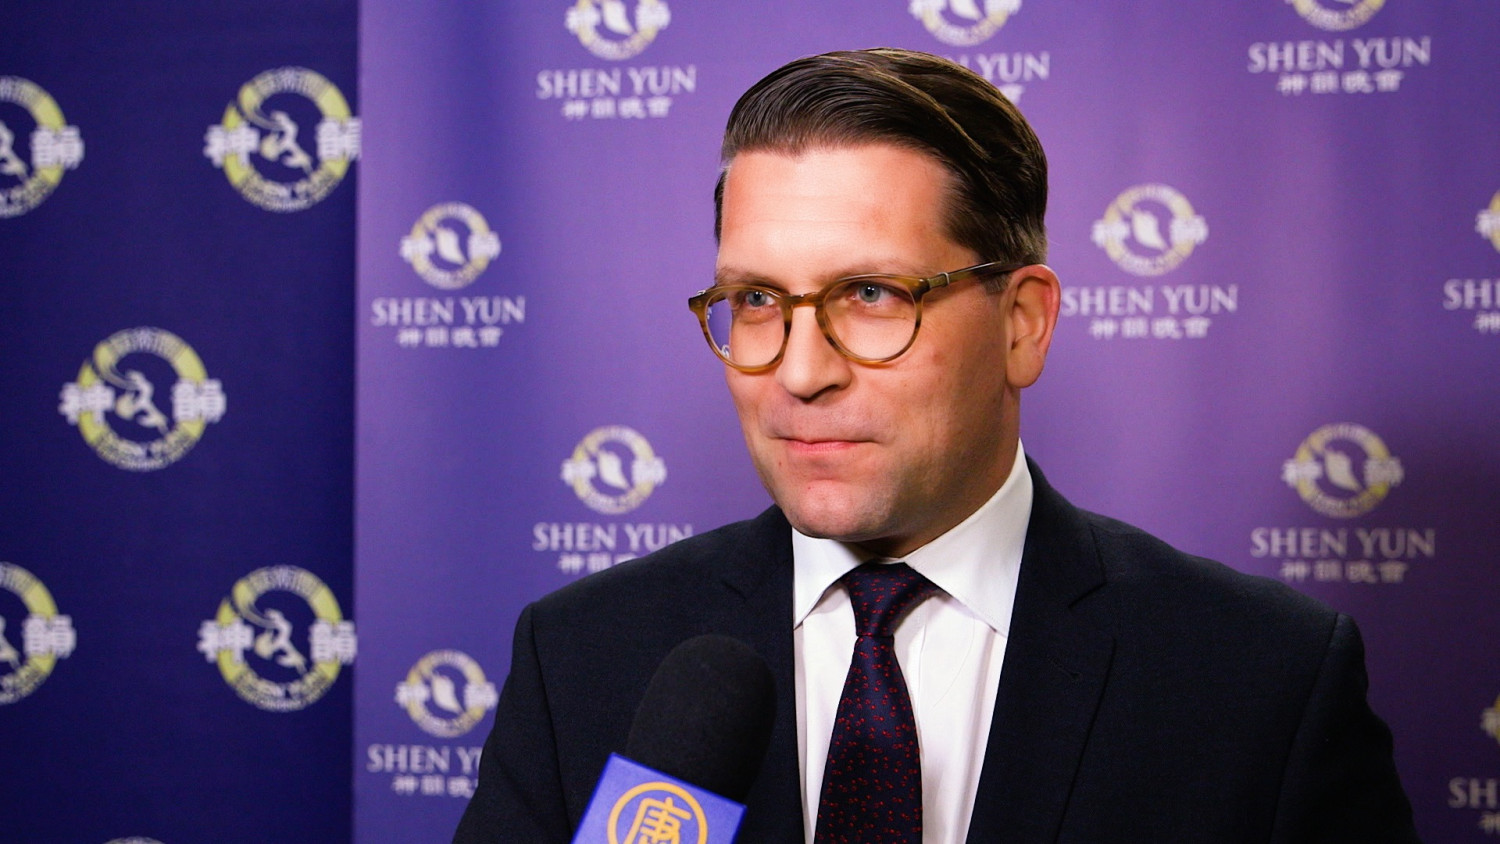 General Director of Canadian Opera Company Lauds Shen Yun's Presentation of Tradition